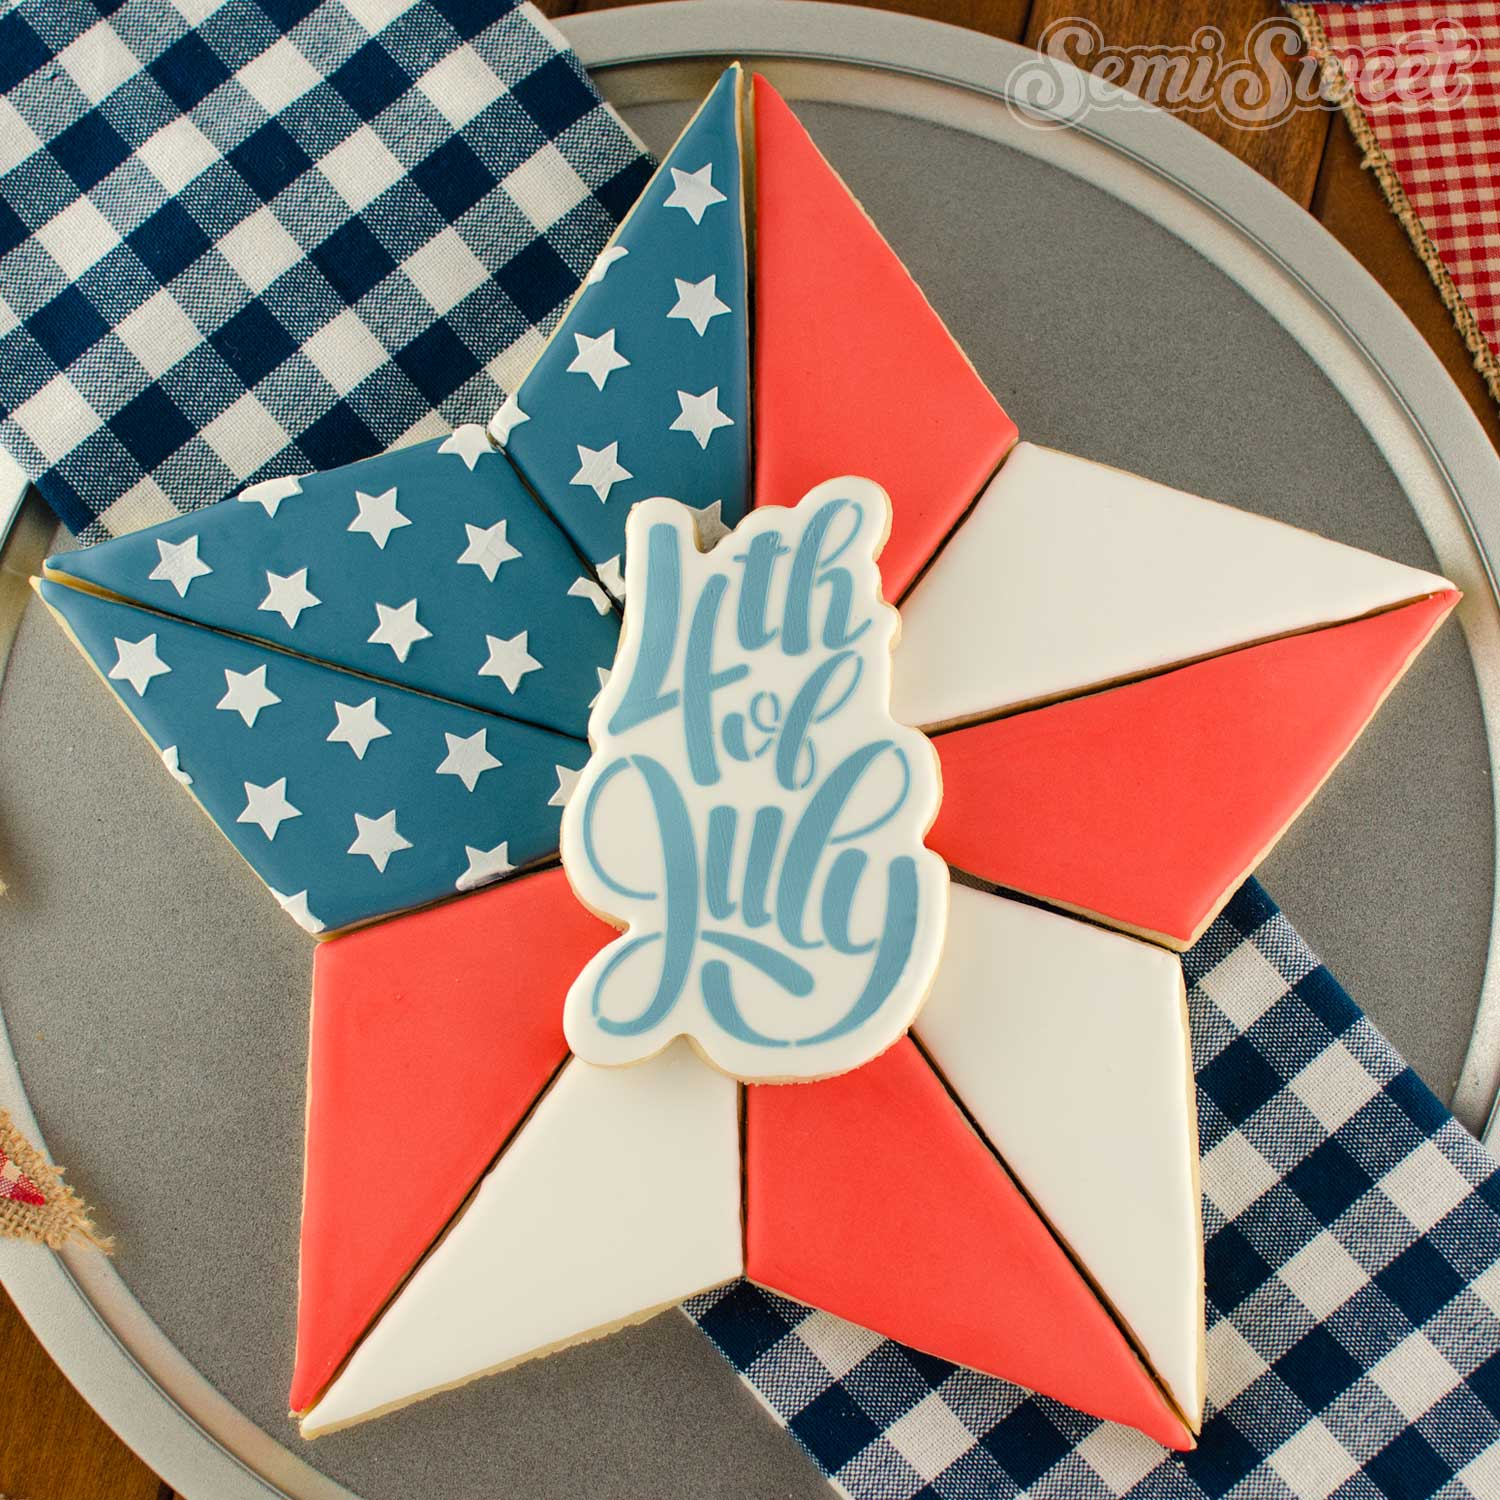 How to Make a Star Cookie Platter